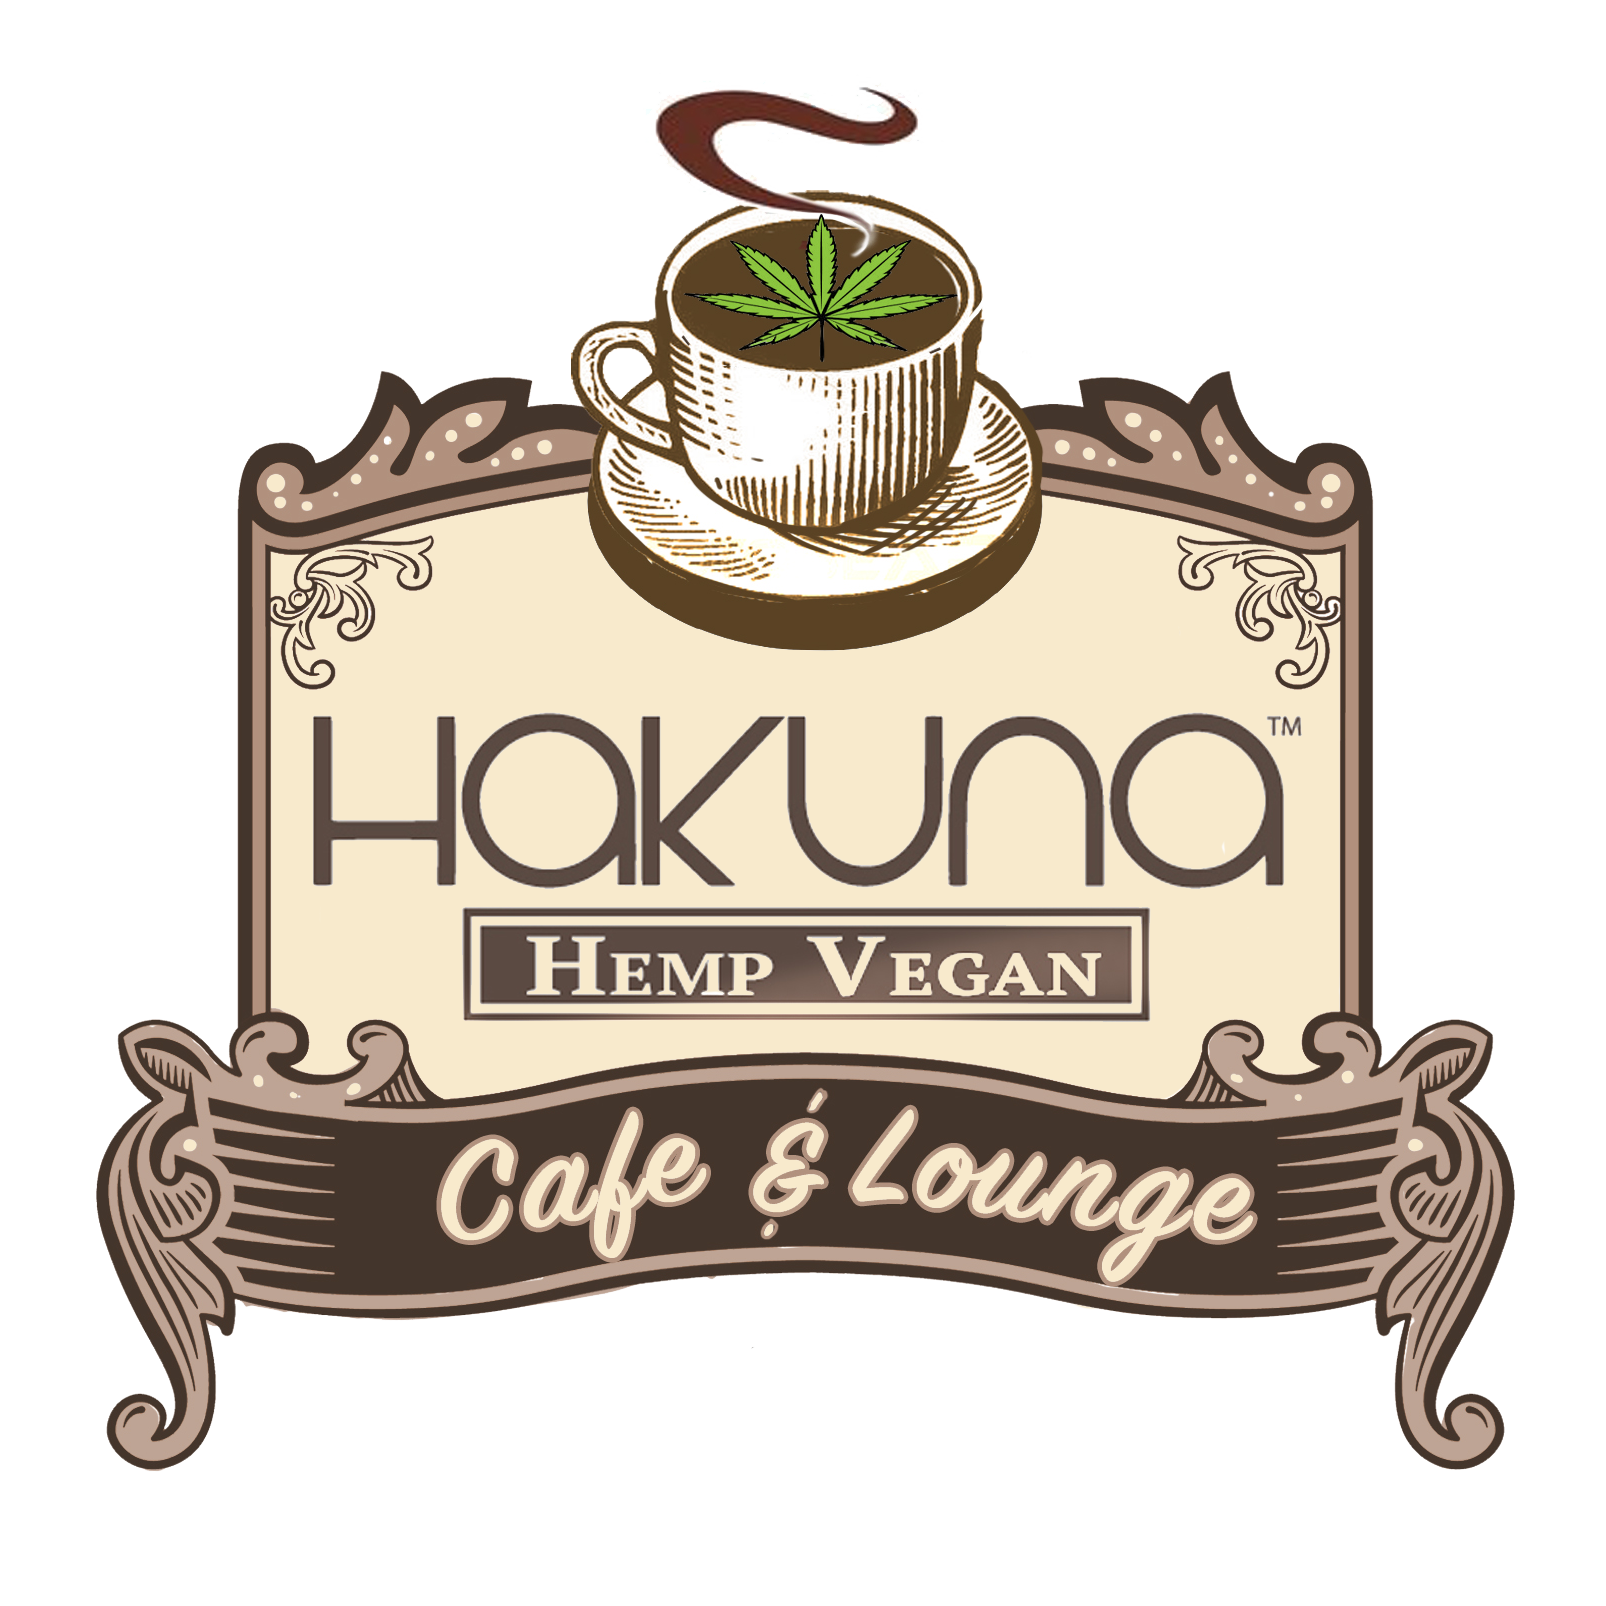 Hakuna Hemp Cafe and Lounge